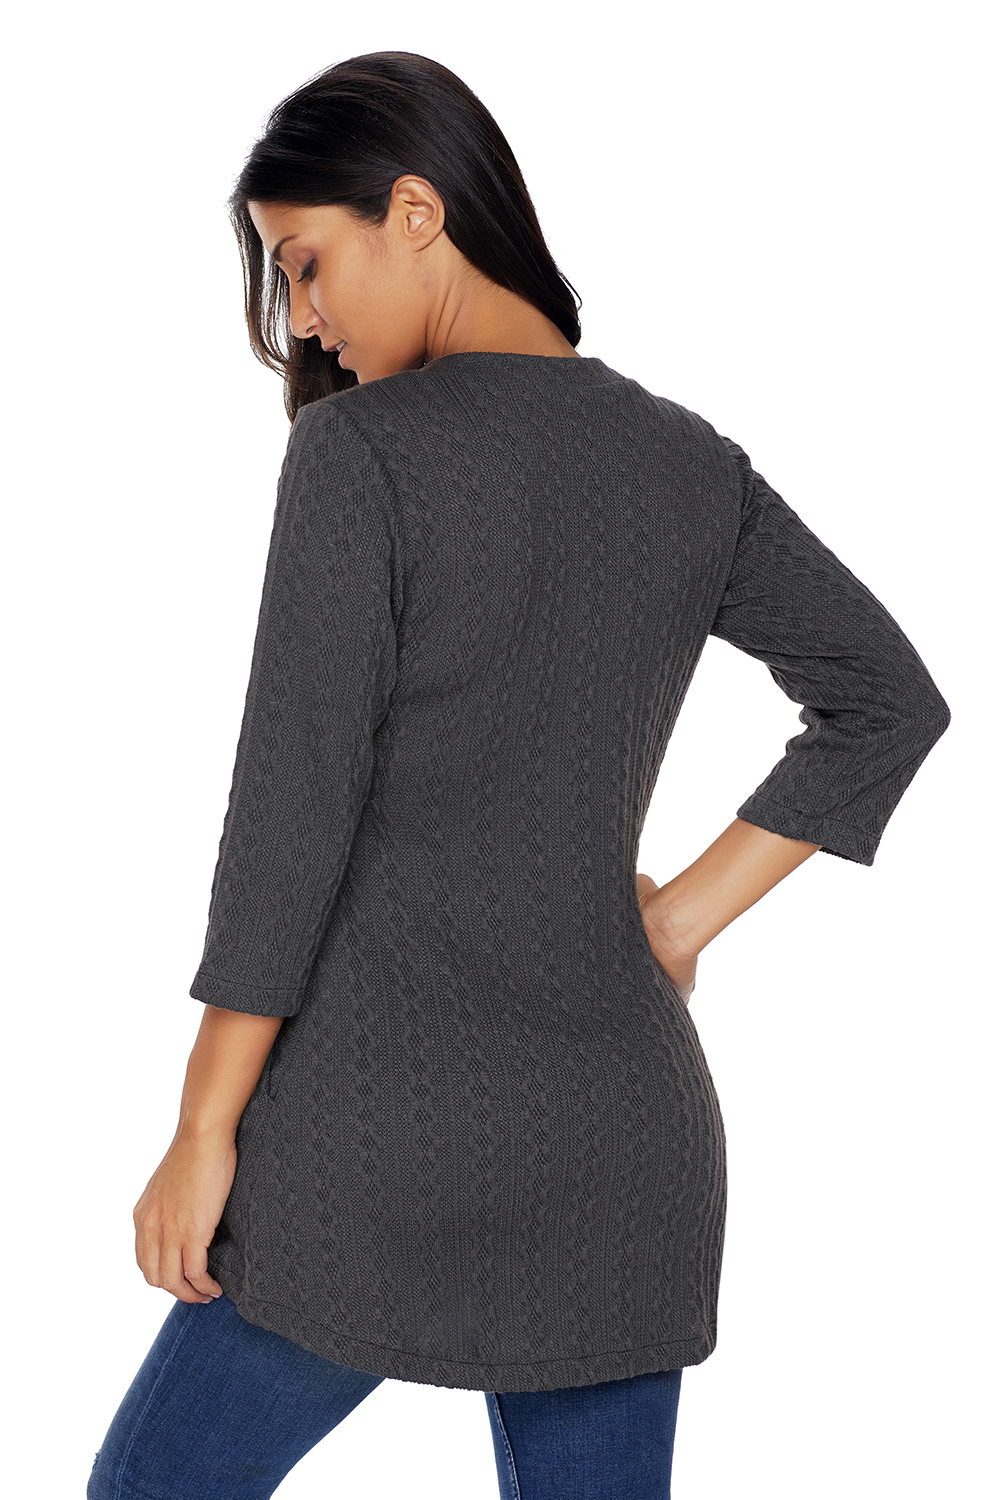 BY27750-1011 Charcoal Cable Knit Button Neck Swingy Tunic